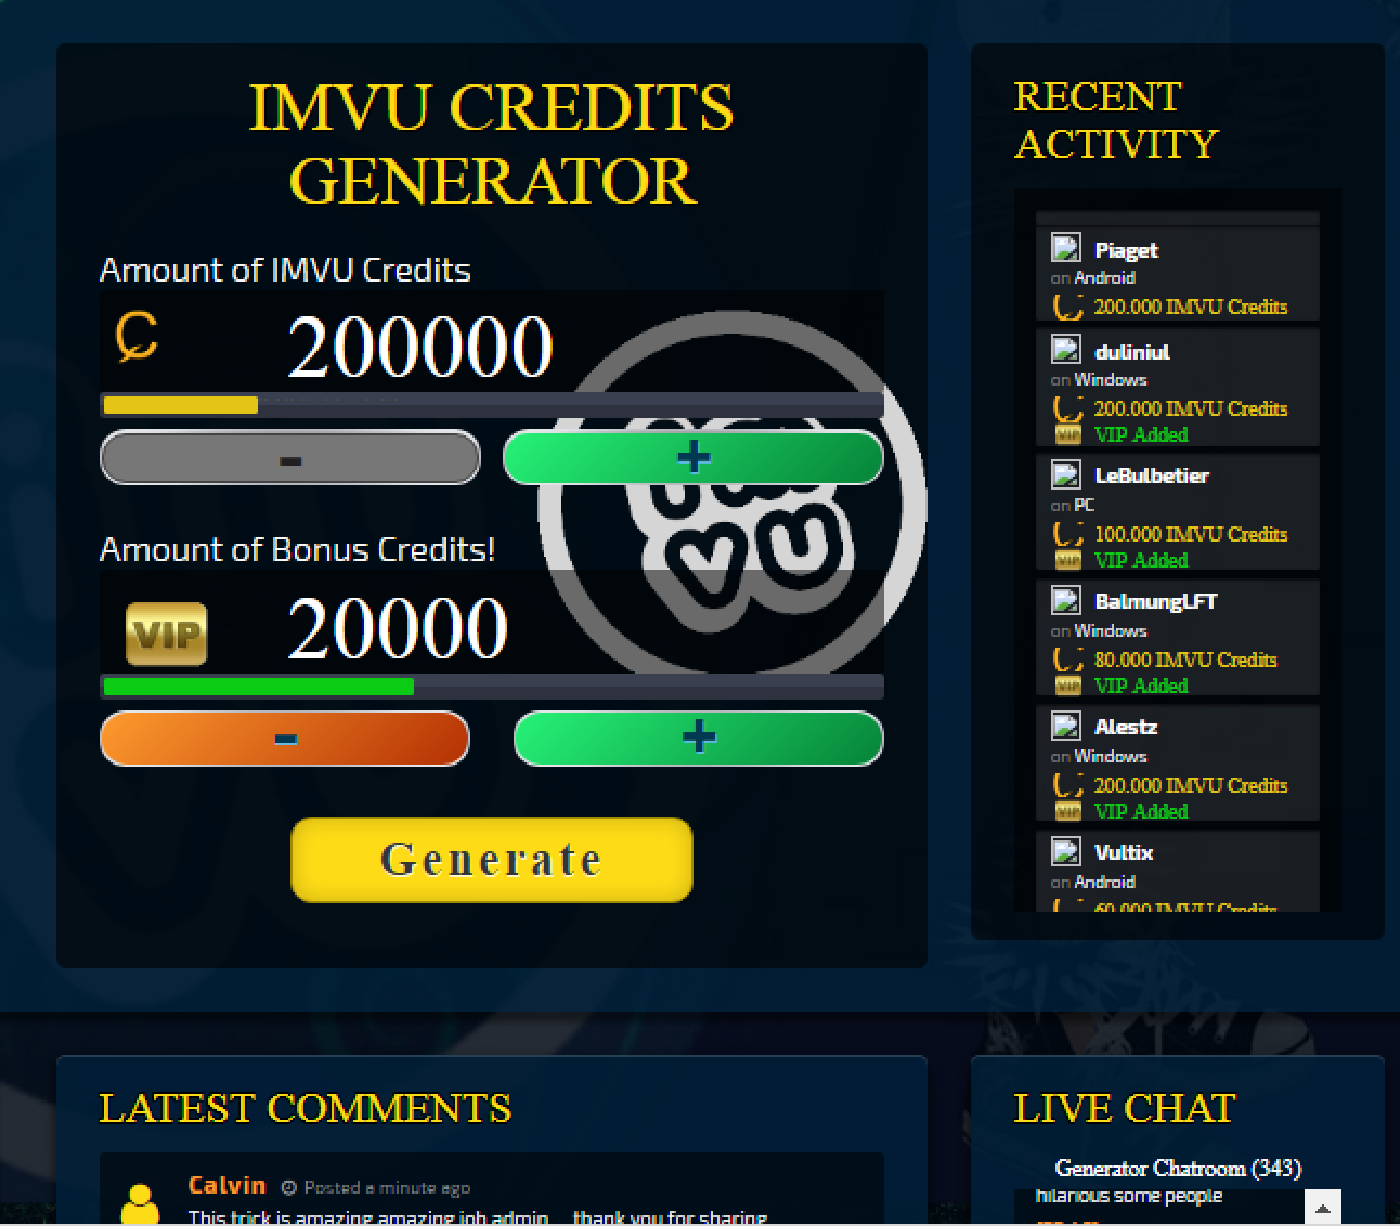 How To Verify Your Email On Imvu - ▷ ▷ PowerMall